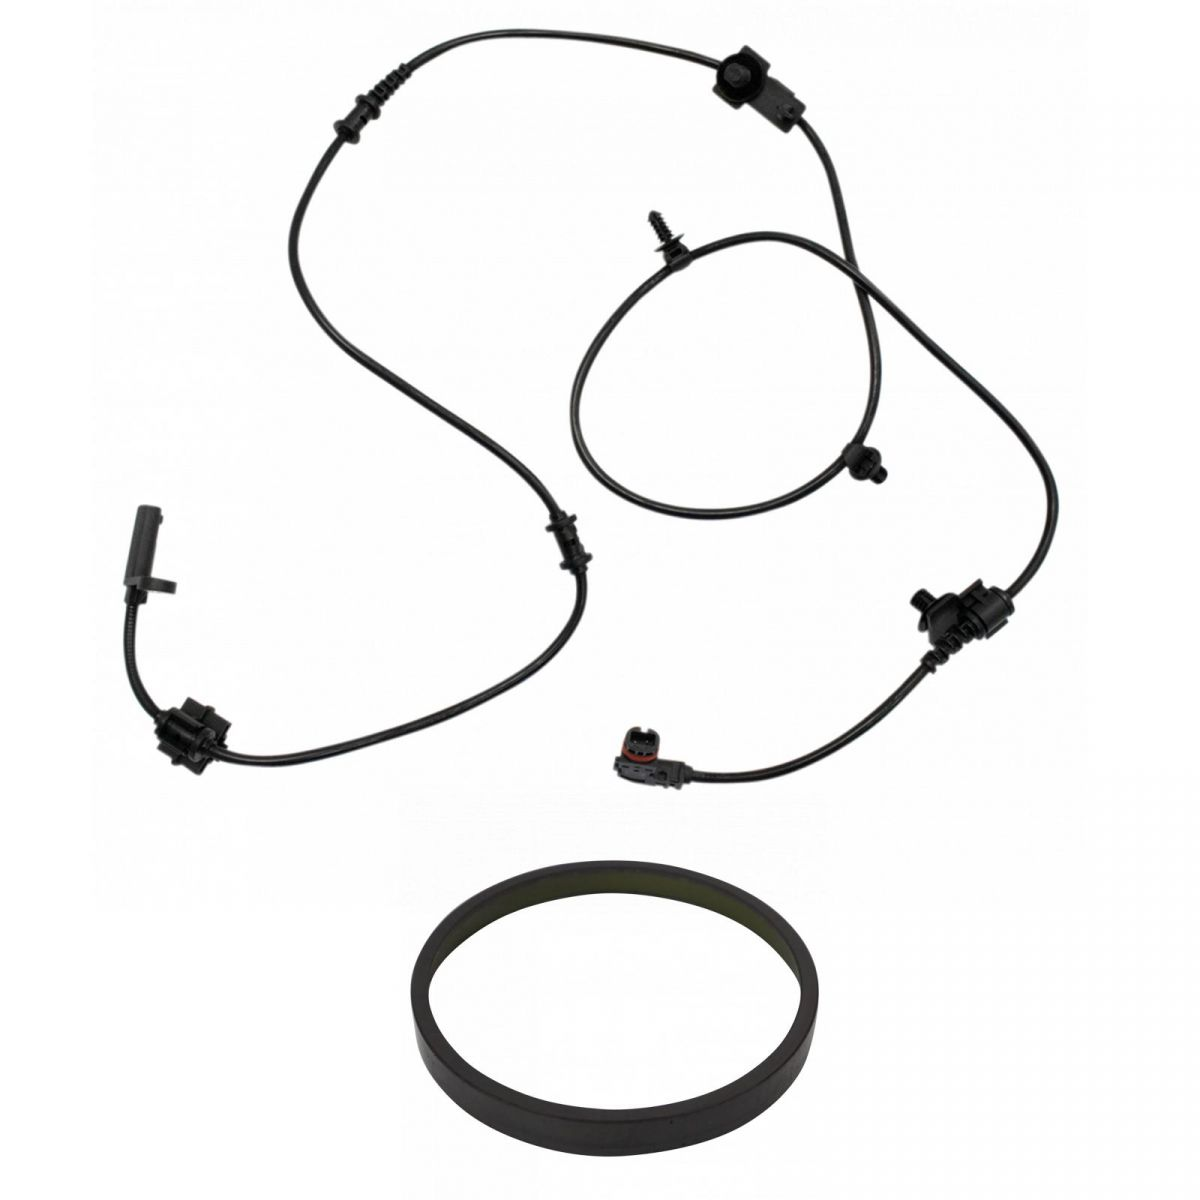 Rear LH ABS Wheel Speed Sensor w/ Magnetic Tone Ring for